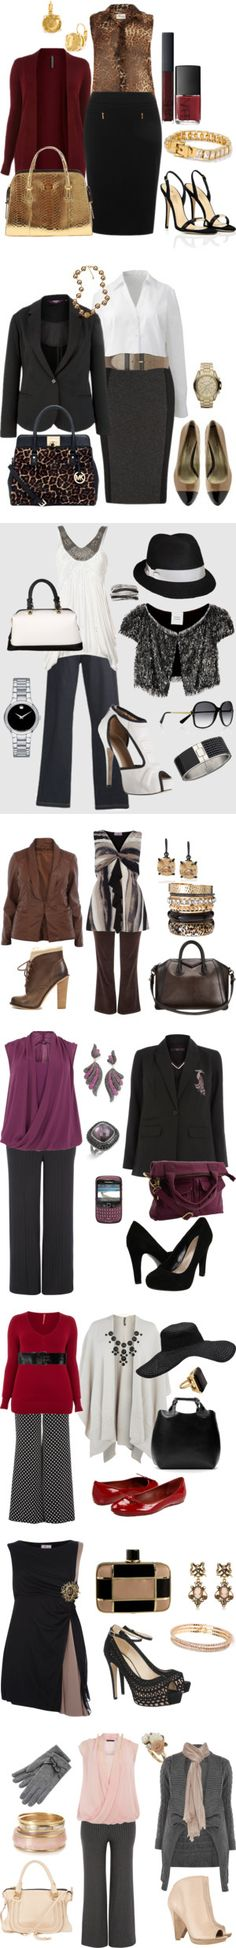 """plus size work clothes"" by stephanycarmona ❤ liked on Polyvore"